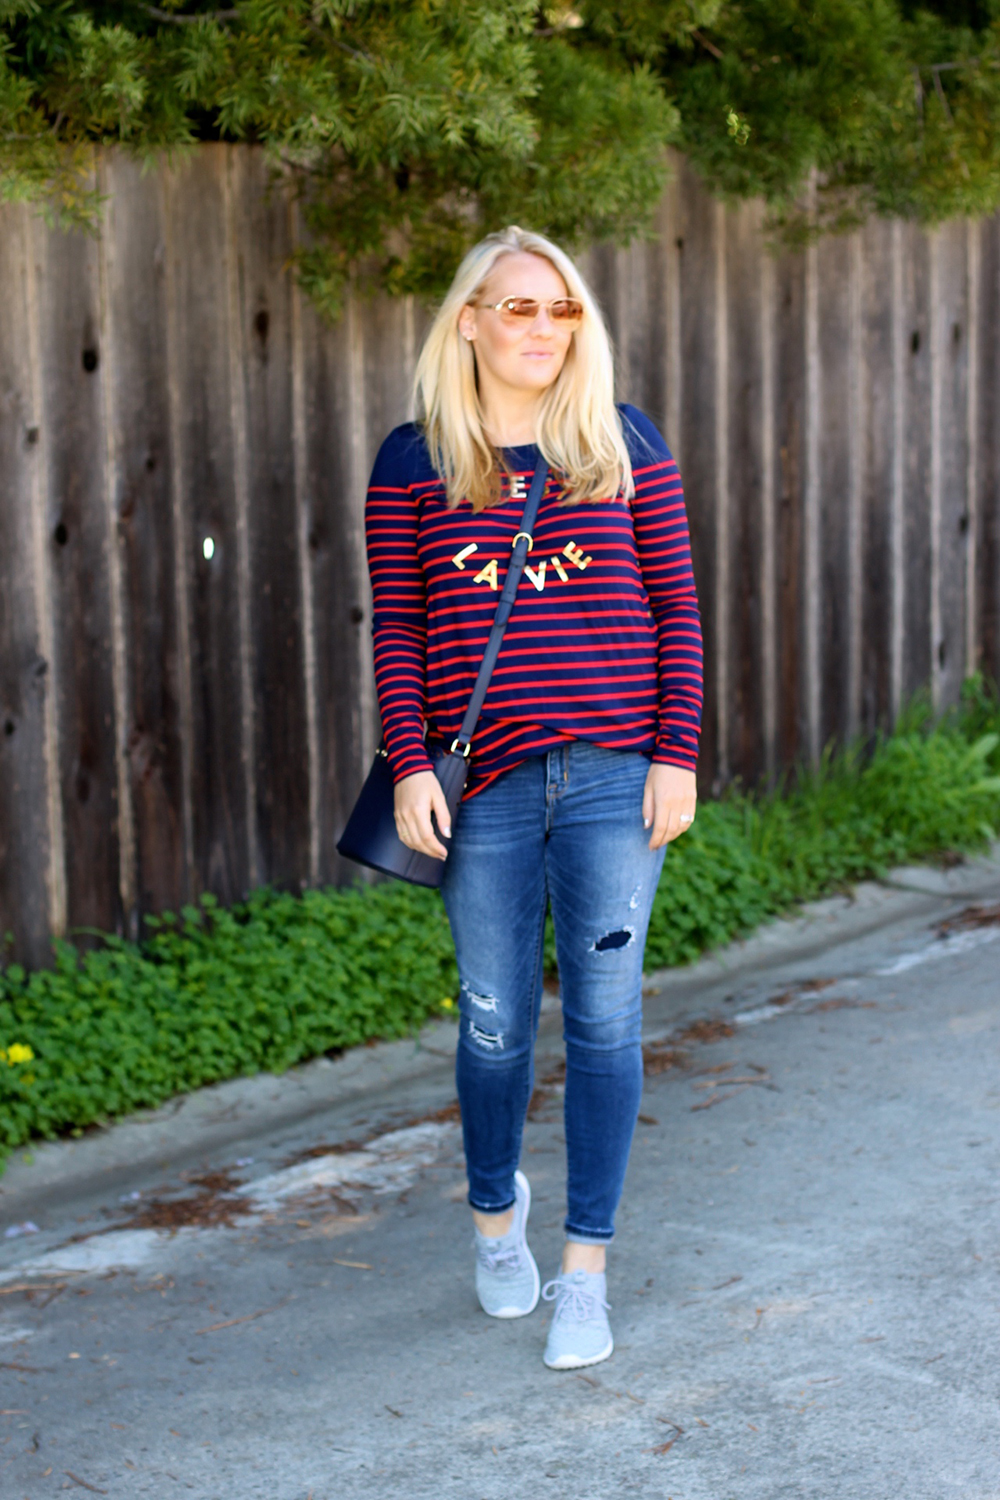 C'est La Vie-Everyday Mom Style-Mom Uniform-Nursing Top-Outfit Inspiration-Bay Area Fashion Blogger-Have Need Want 3